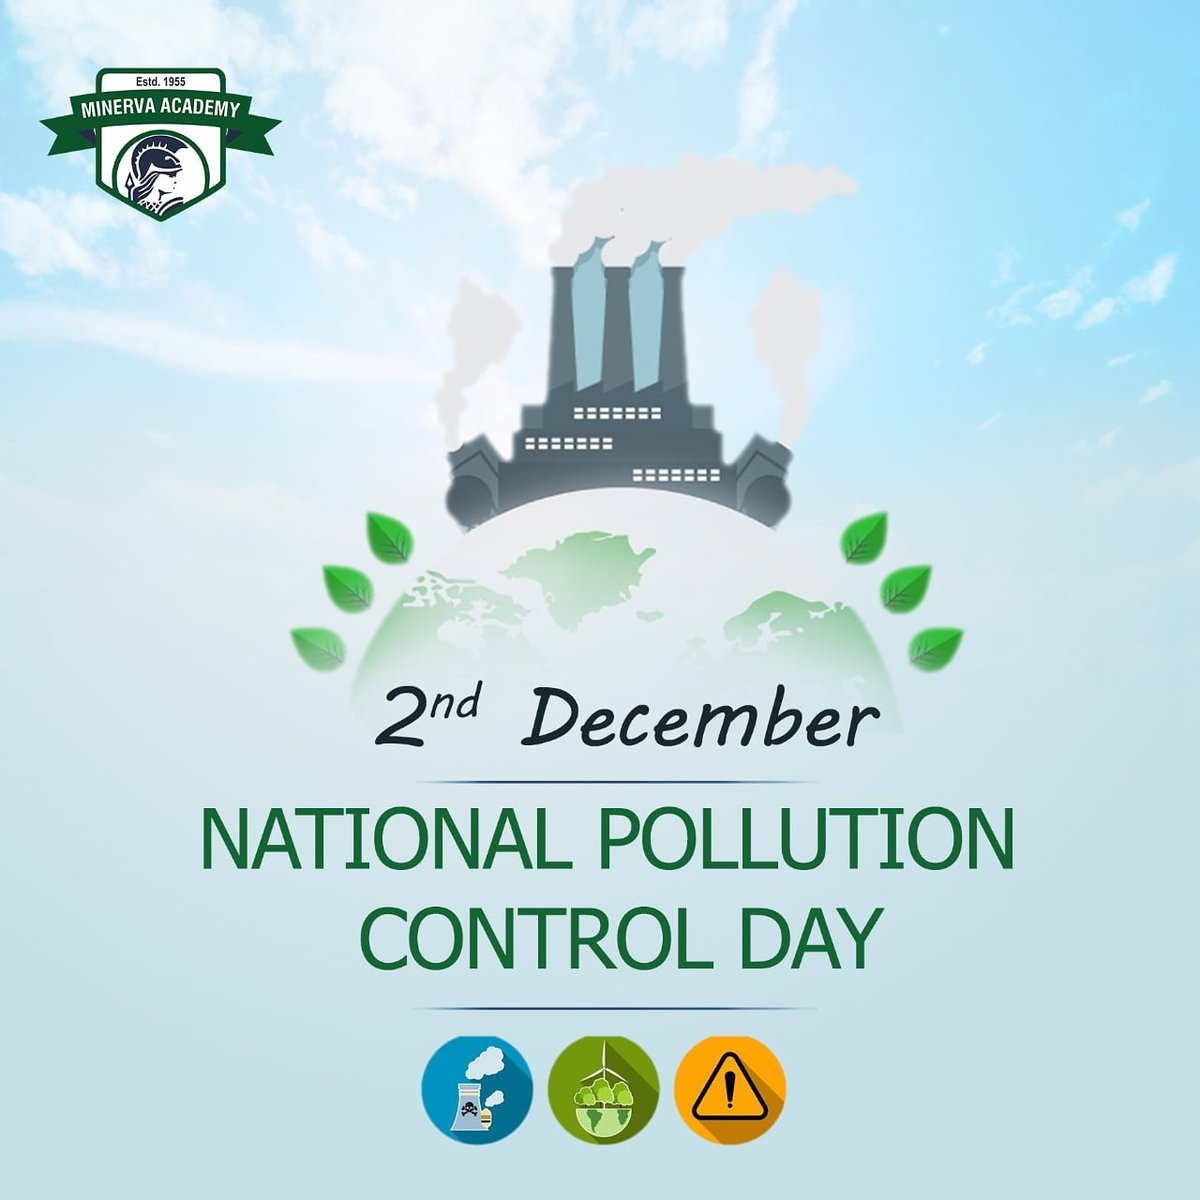 December 2 is observed as National Pollution Control Day every year. The day is observed in the memory💐 of those who have lost their lives🙏🏻 in the Bhopal Gas tragedy on the night of 🗓️December 2nd and 3rd, 1984. #pollutioncontrolday #awareness #PollutionControl #pollutionfree